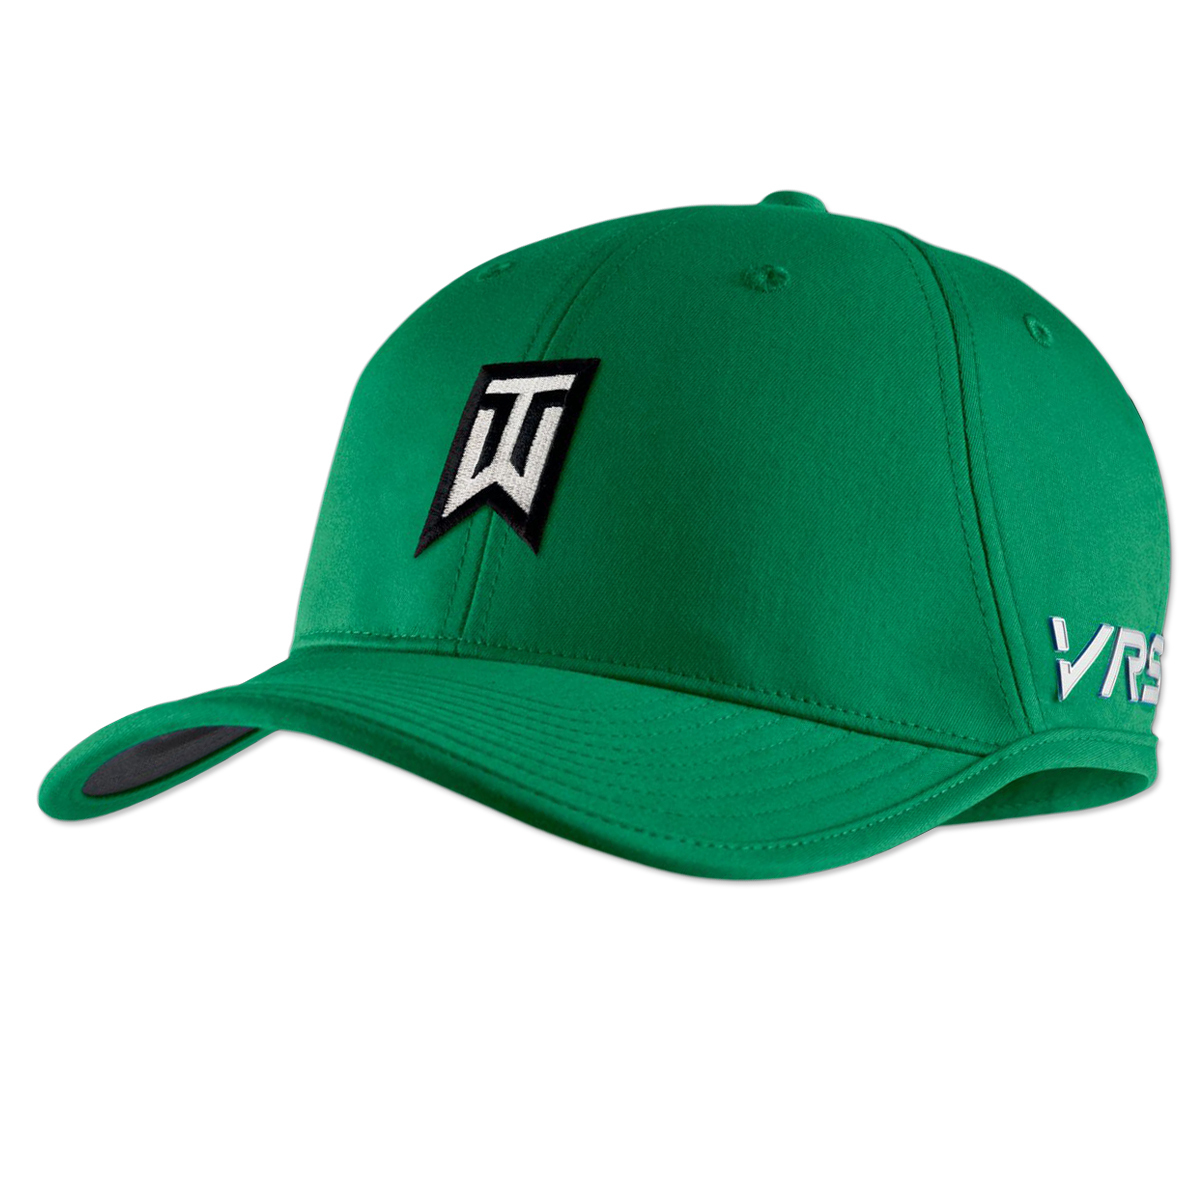 Tiger Woods Limited Edition Practice Cap